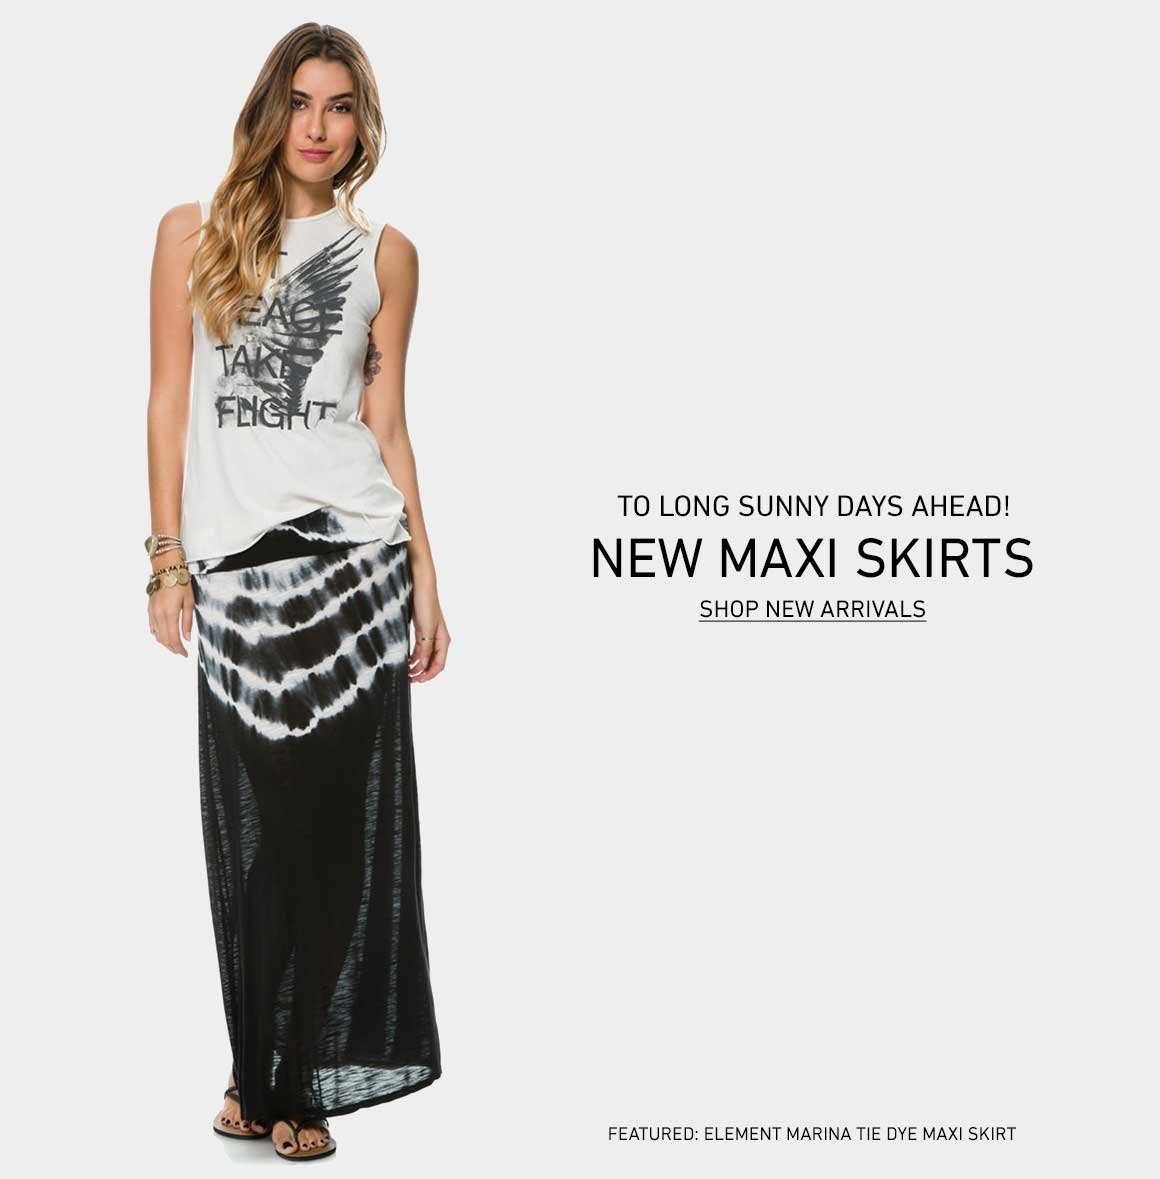 To The Long Days Ahead: Shop New Maxi Skirts